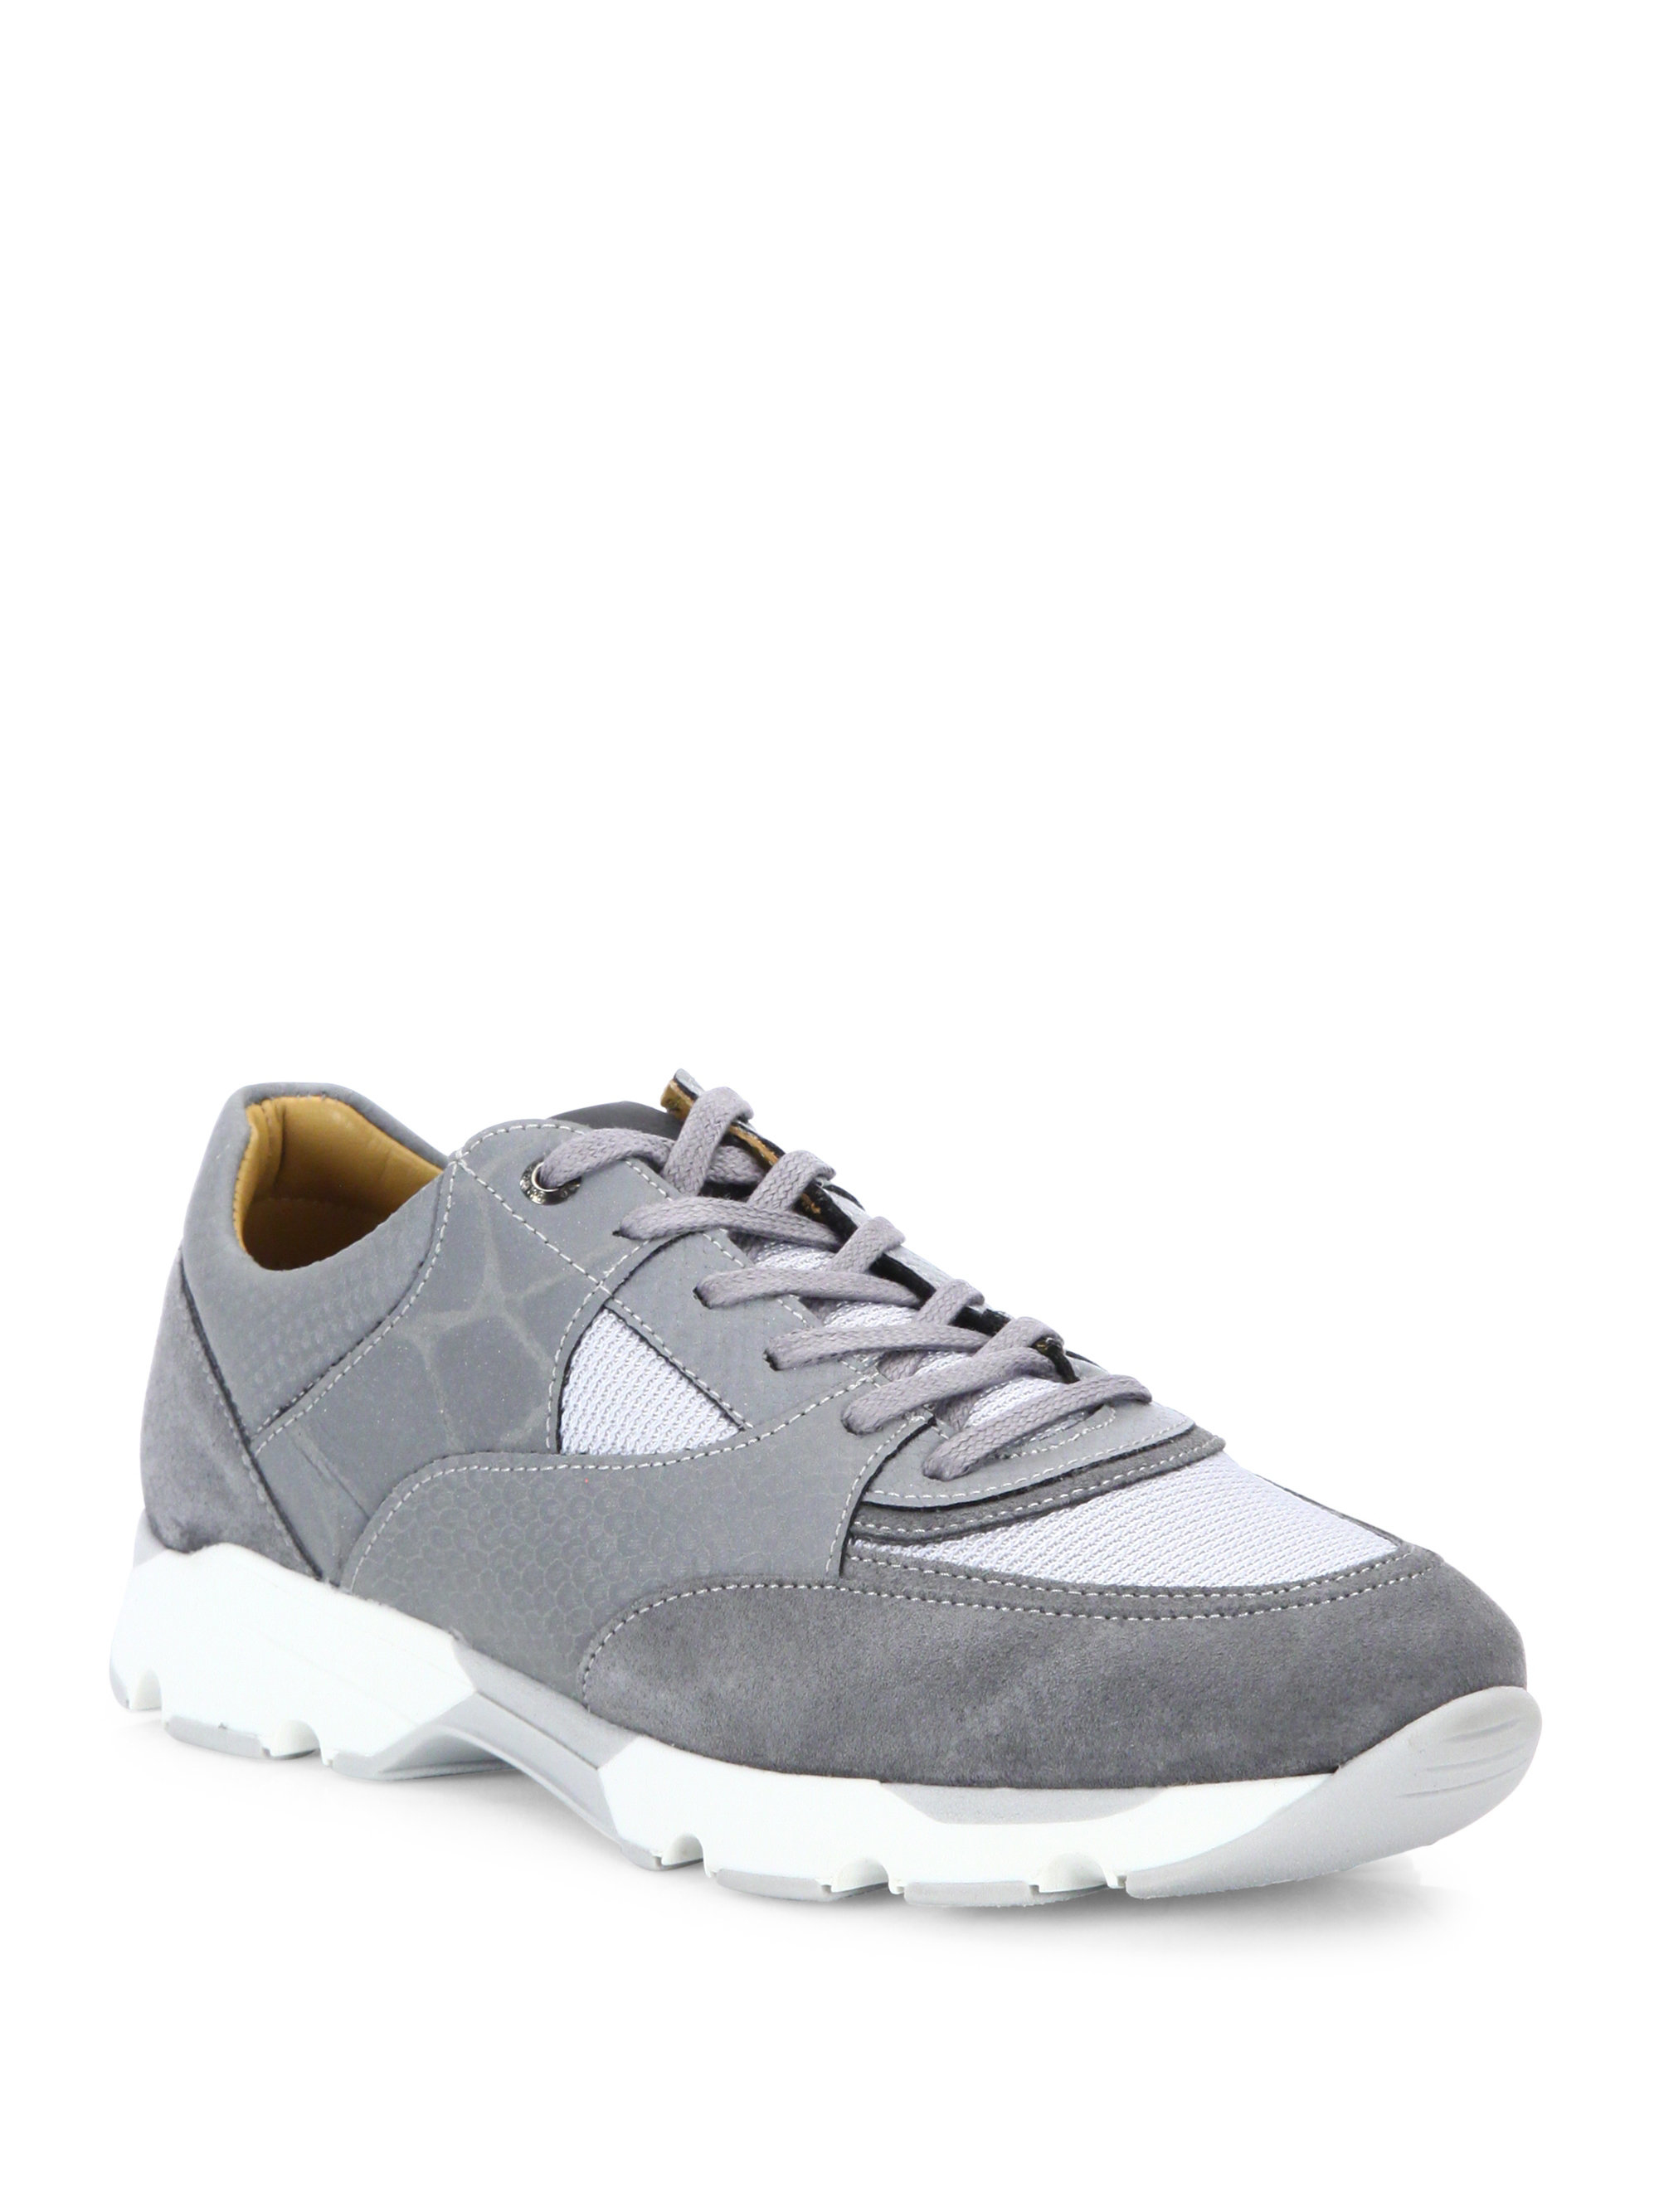 Android Homme Belter Runners In Gray For Men Lyst